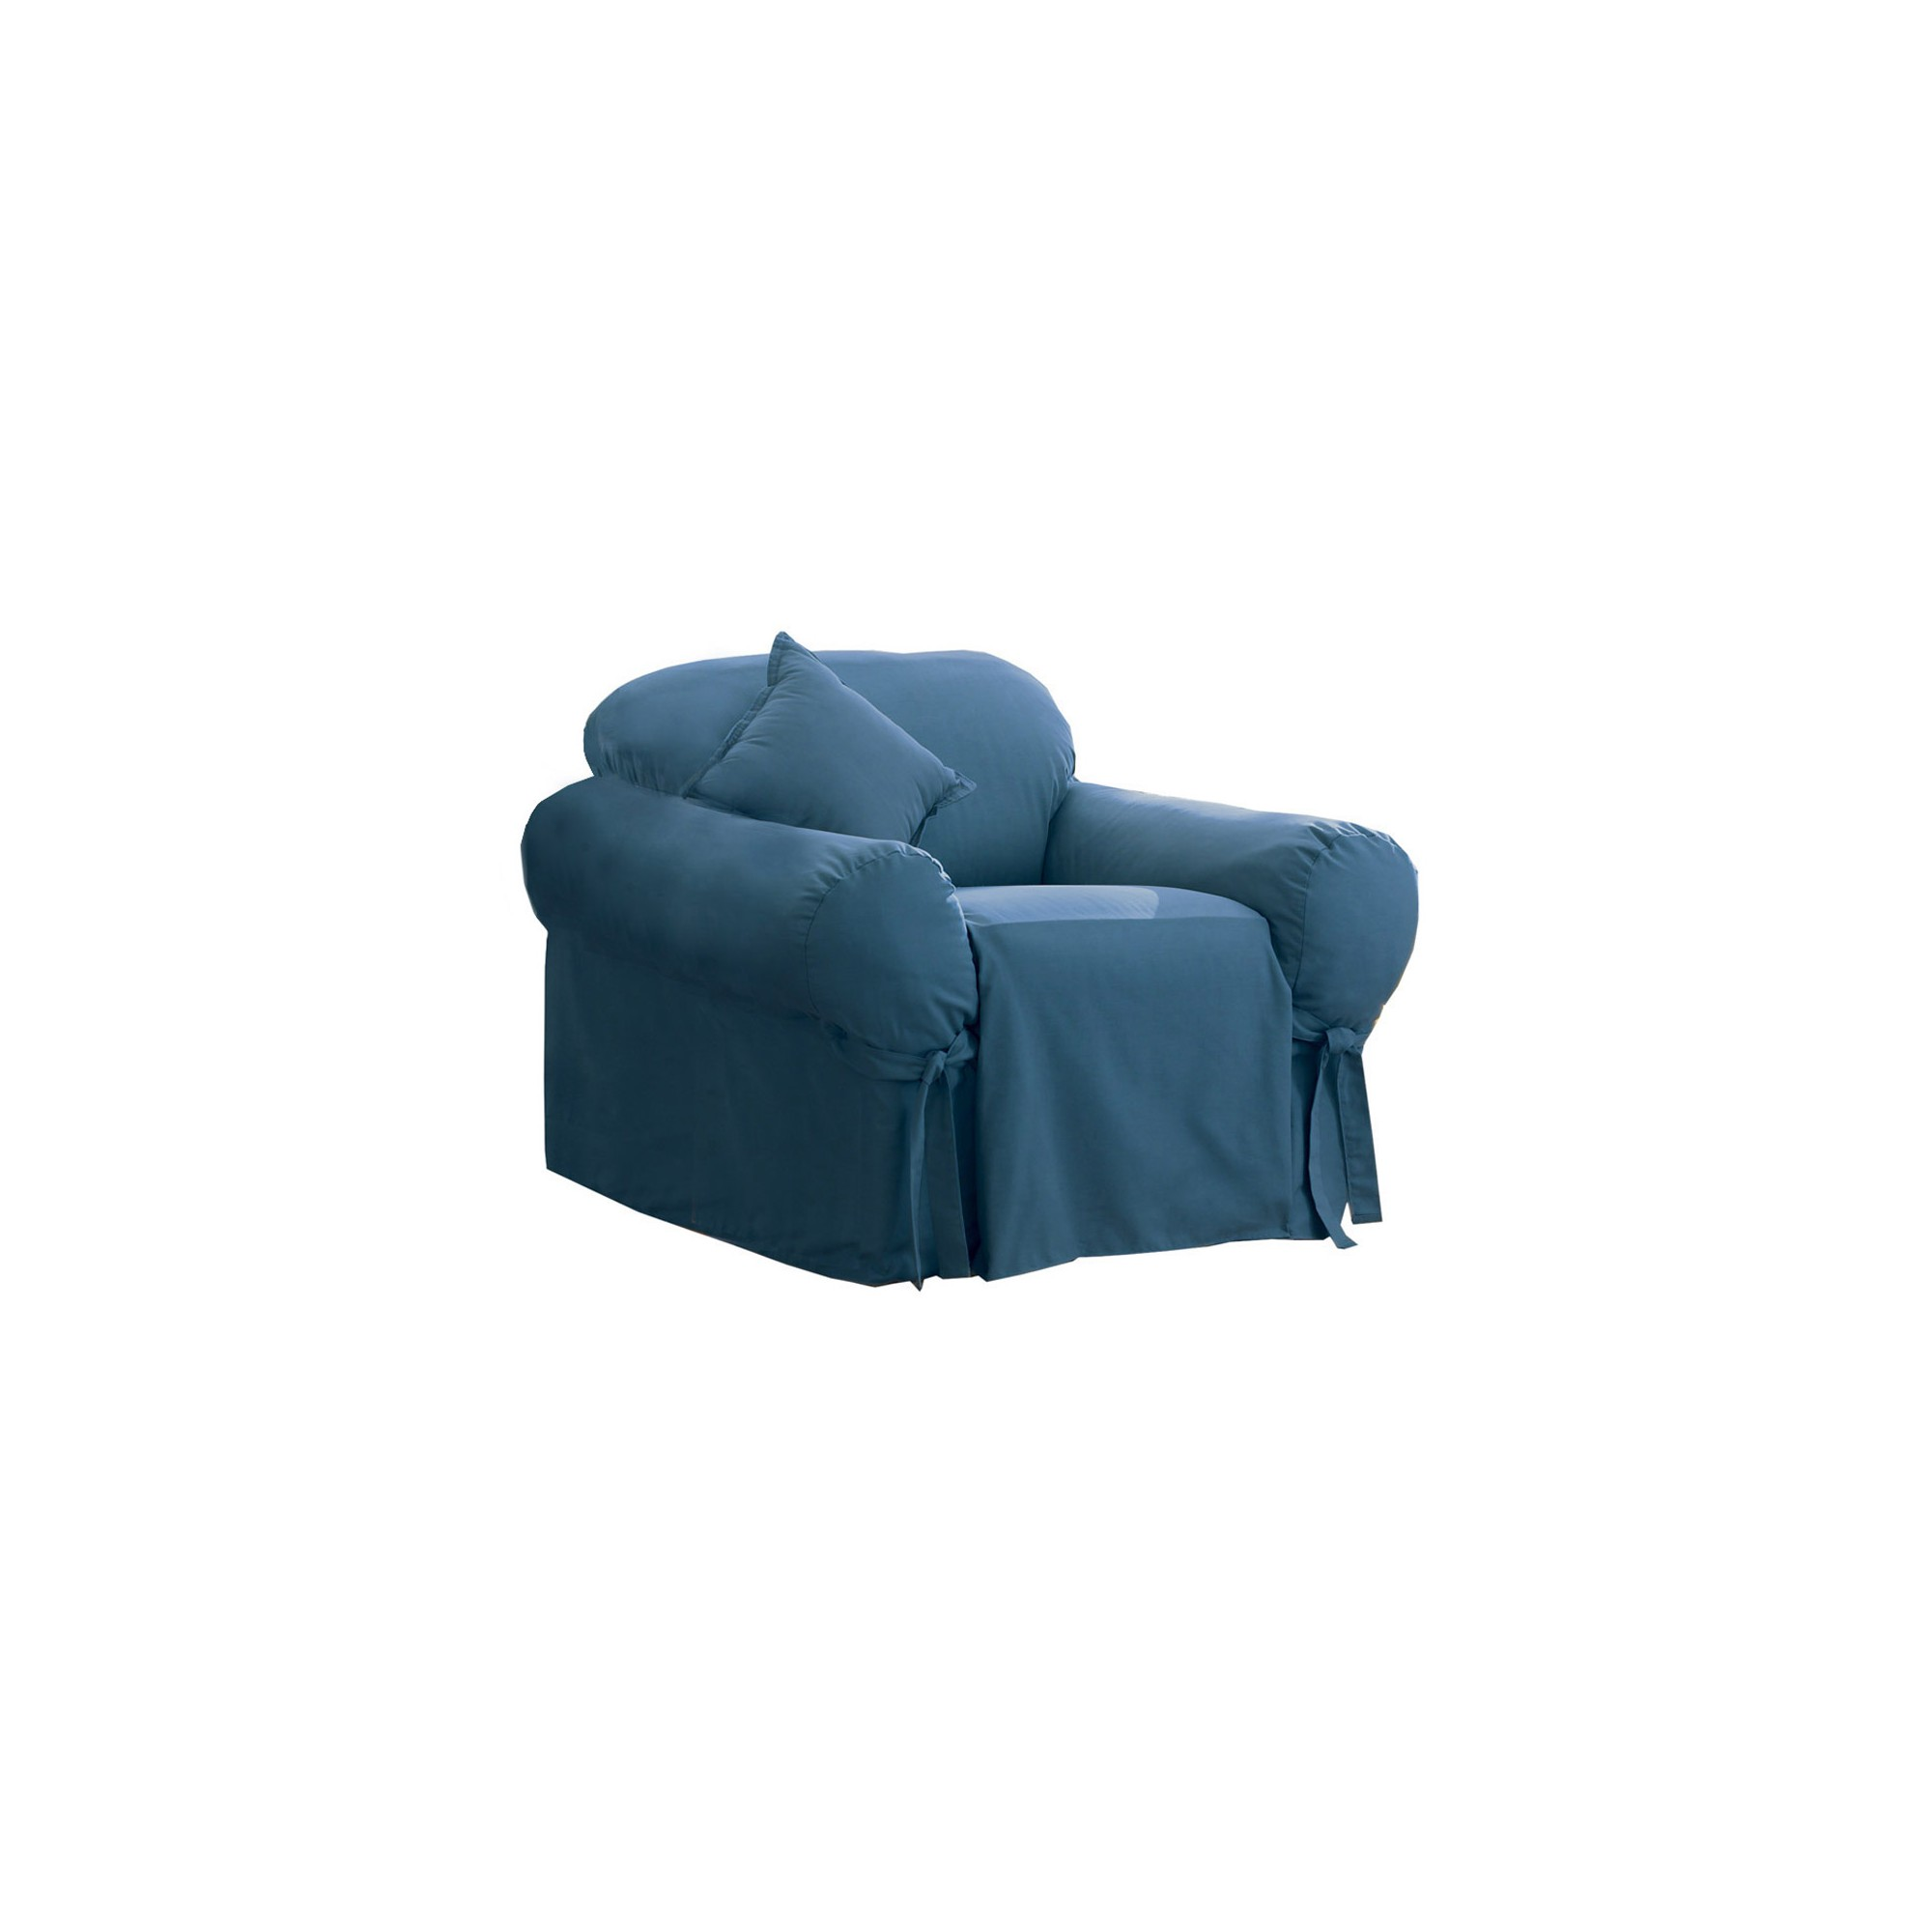 Cotton Duck Chair Slipcover Blue Stone - Sure Fit, Blue Grey